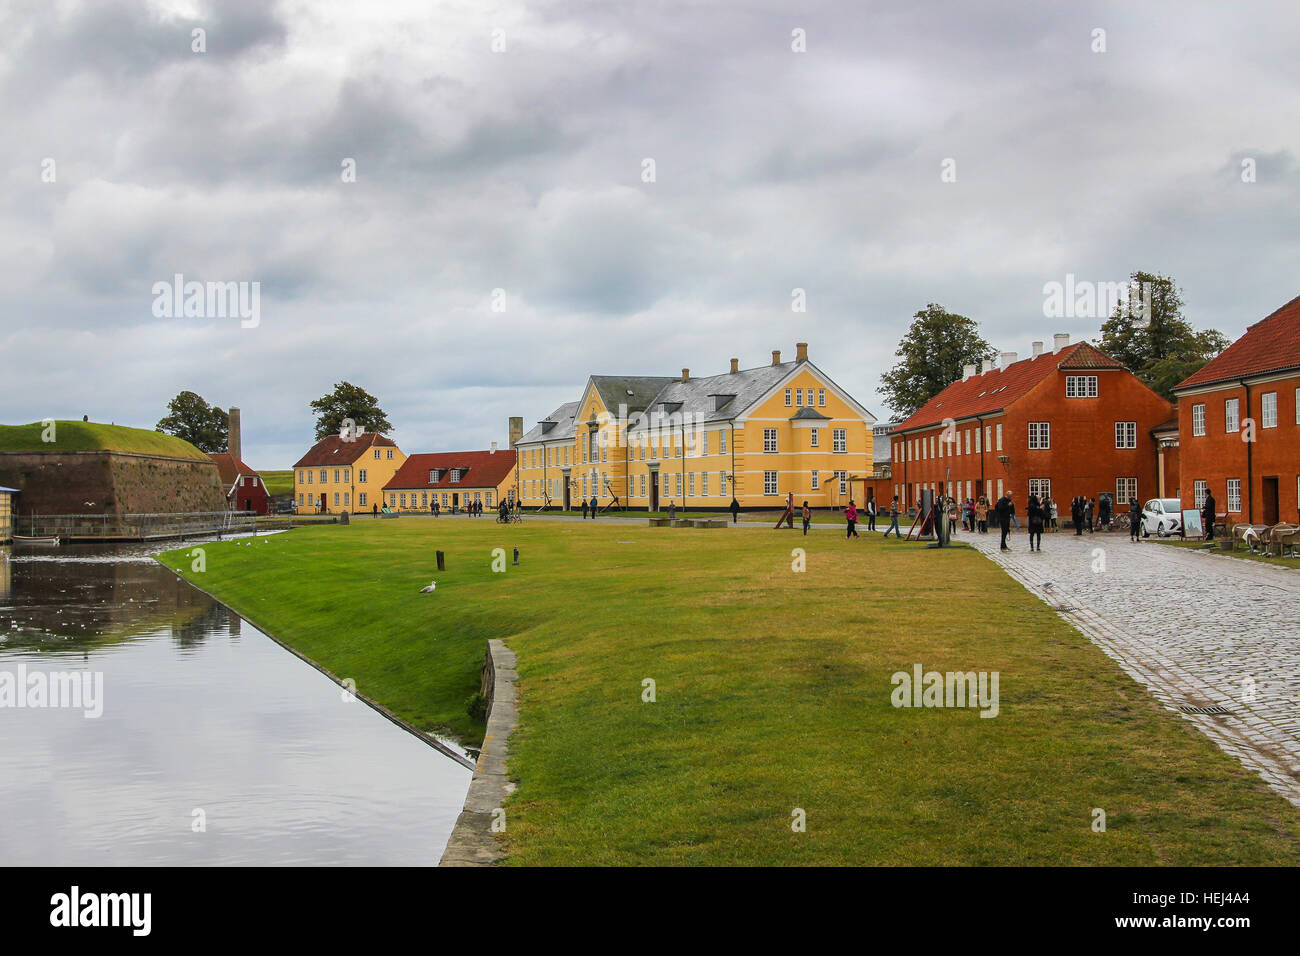 Copenhagen, Denmark - October 2, 2016: People visiting  houses neighboring Kronborg or Elsinore Castle otherwise - Stock Image